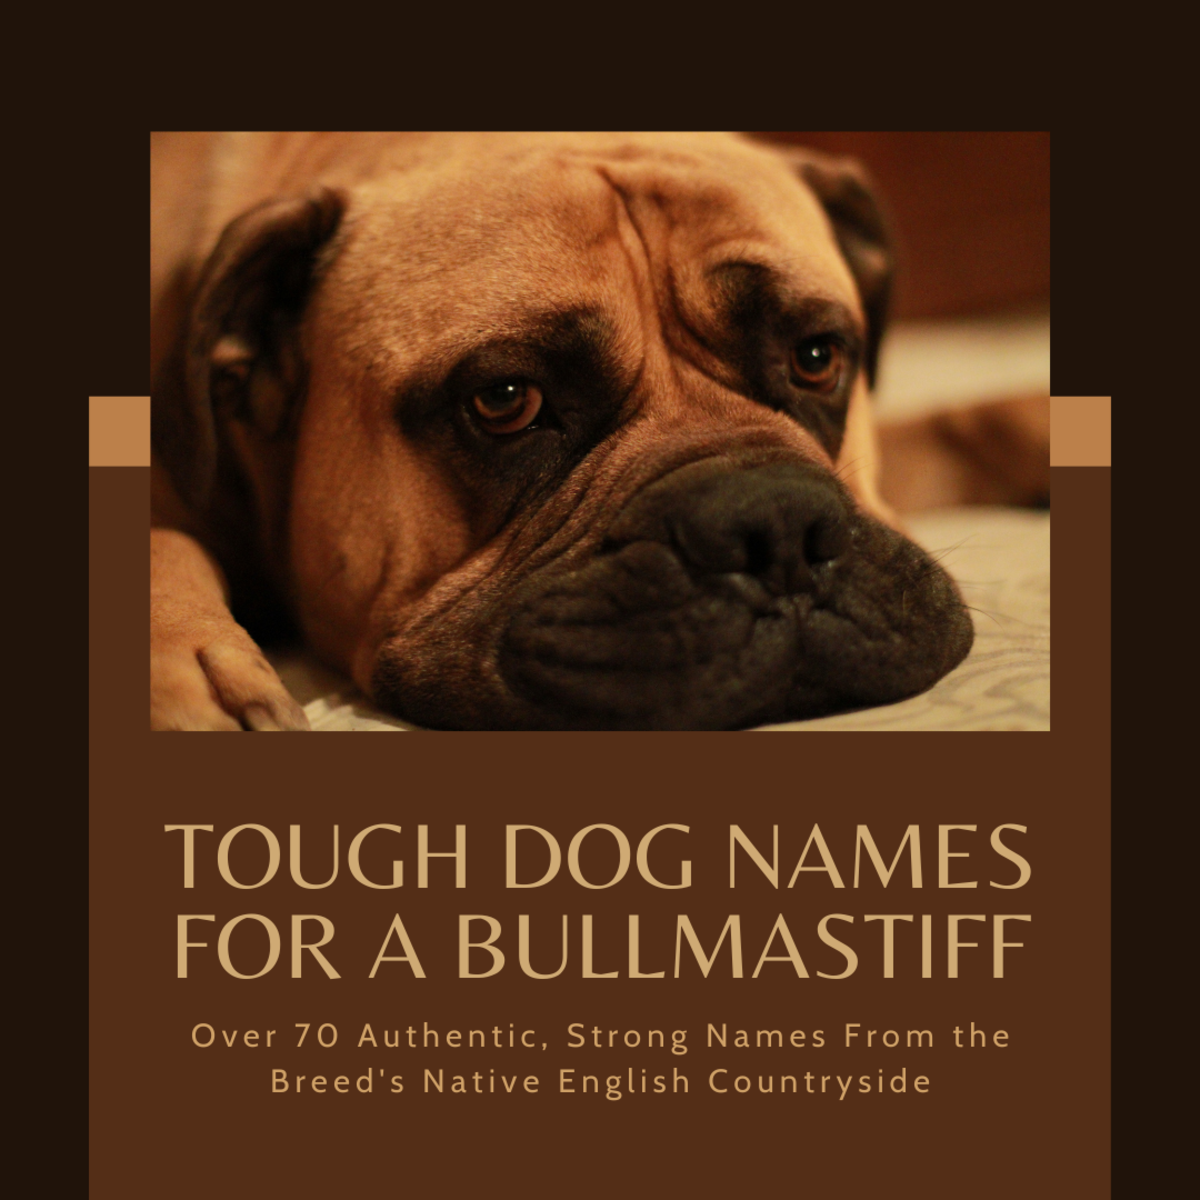 Tough Dog Names From England for a Bullmastiff